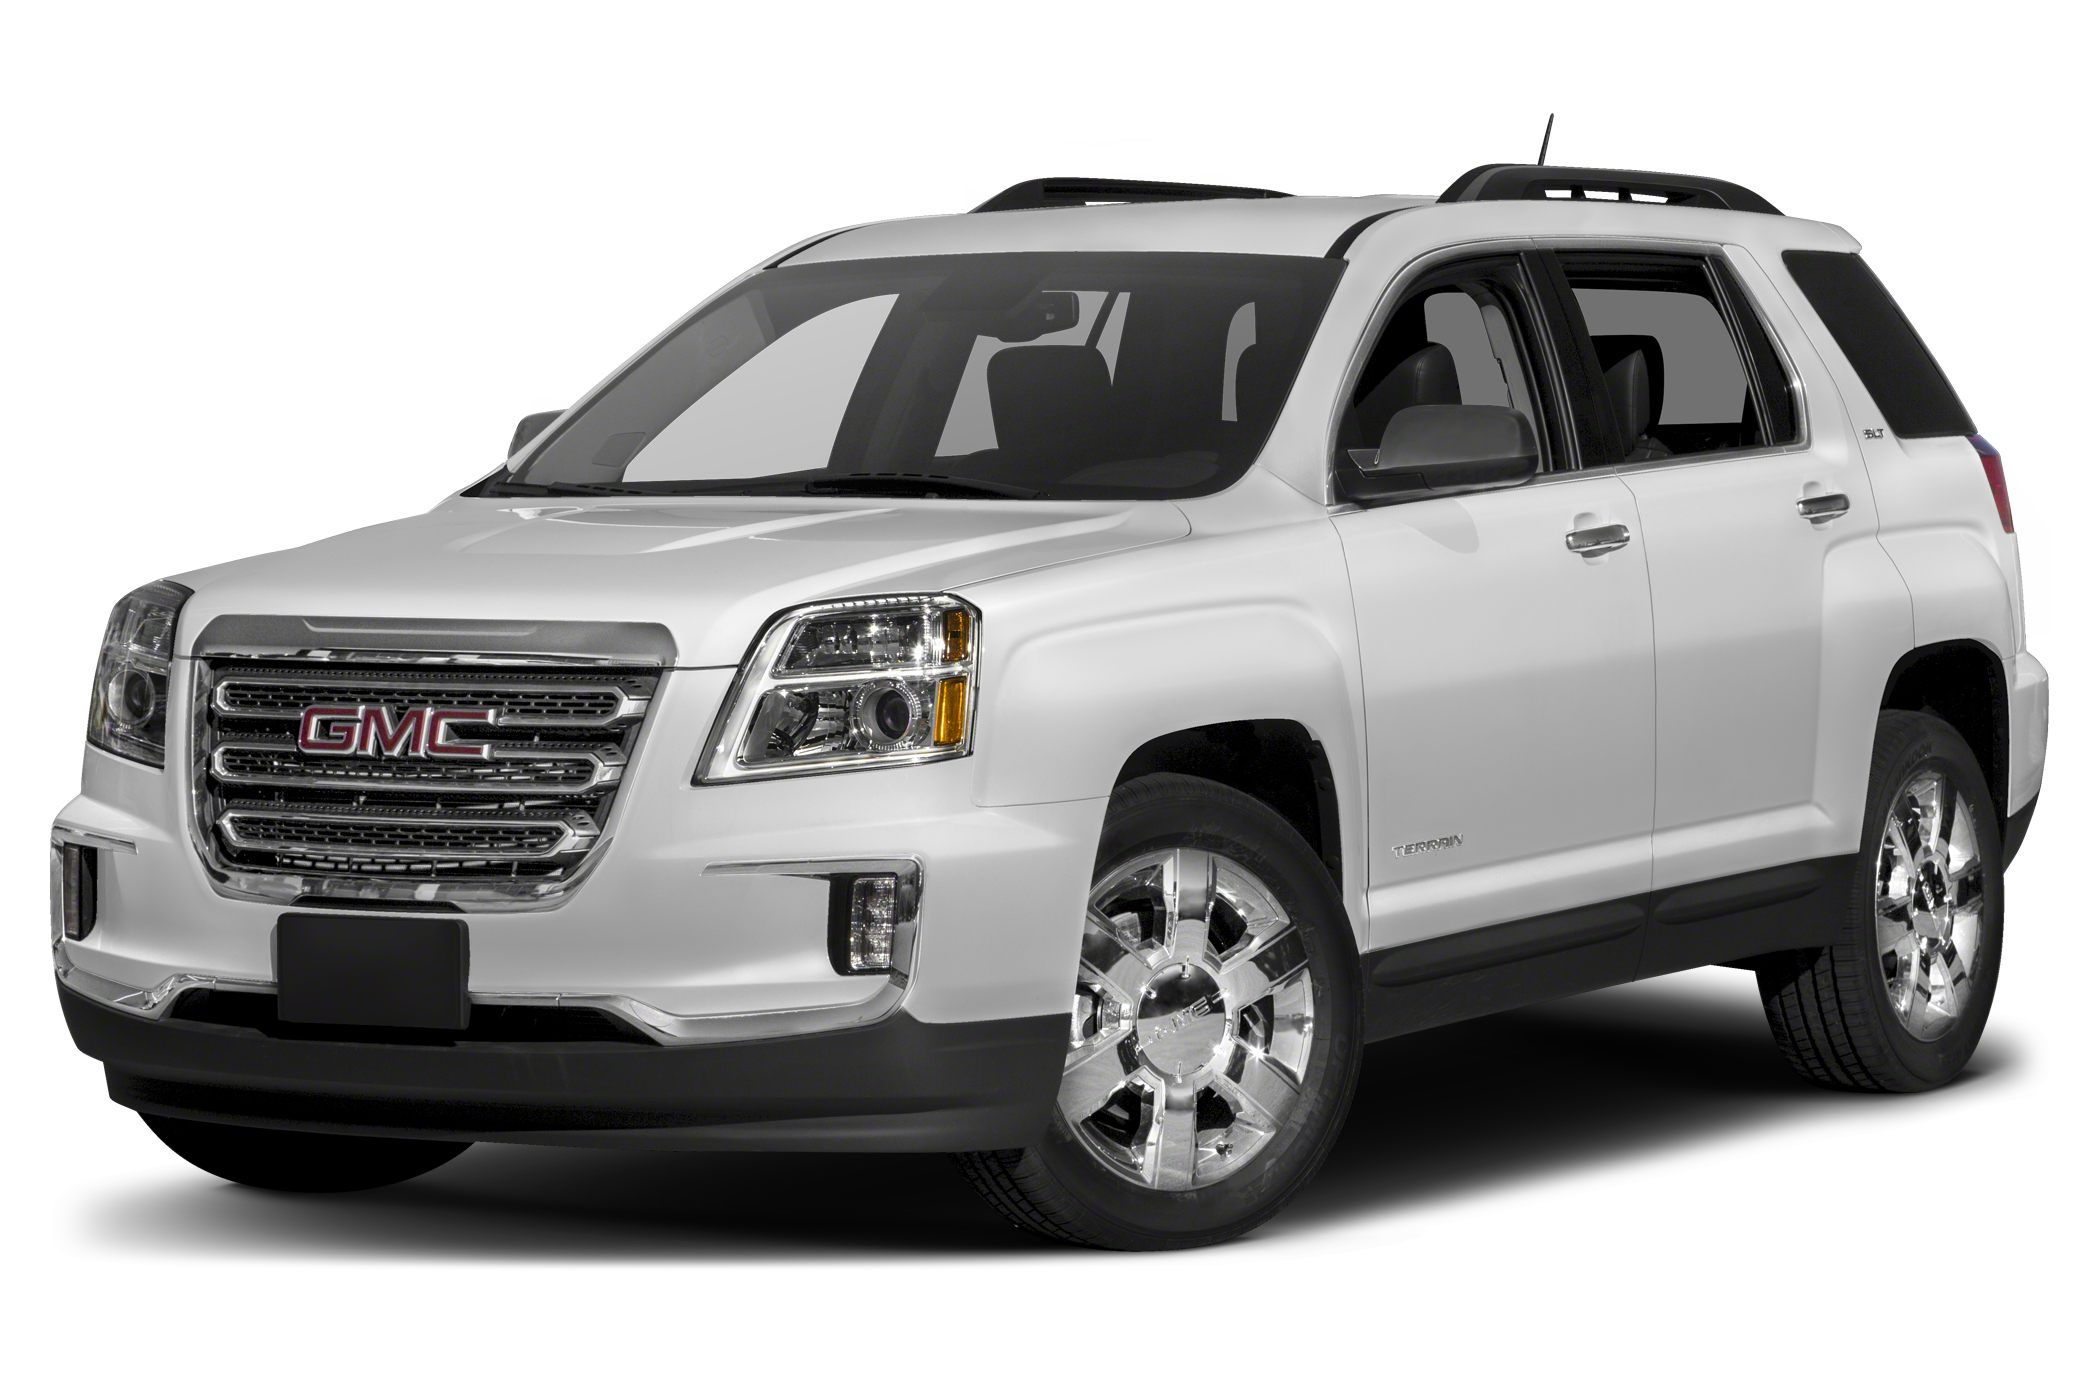 2017 Gmc Terrain Slt All Wheel Drive Specs And Prices